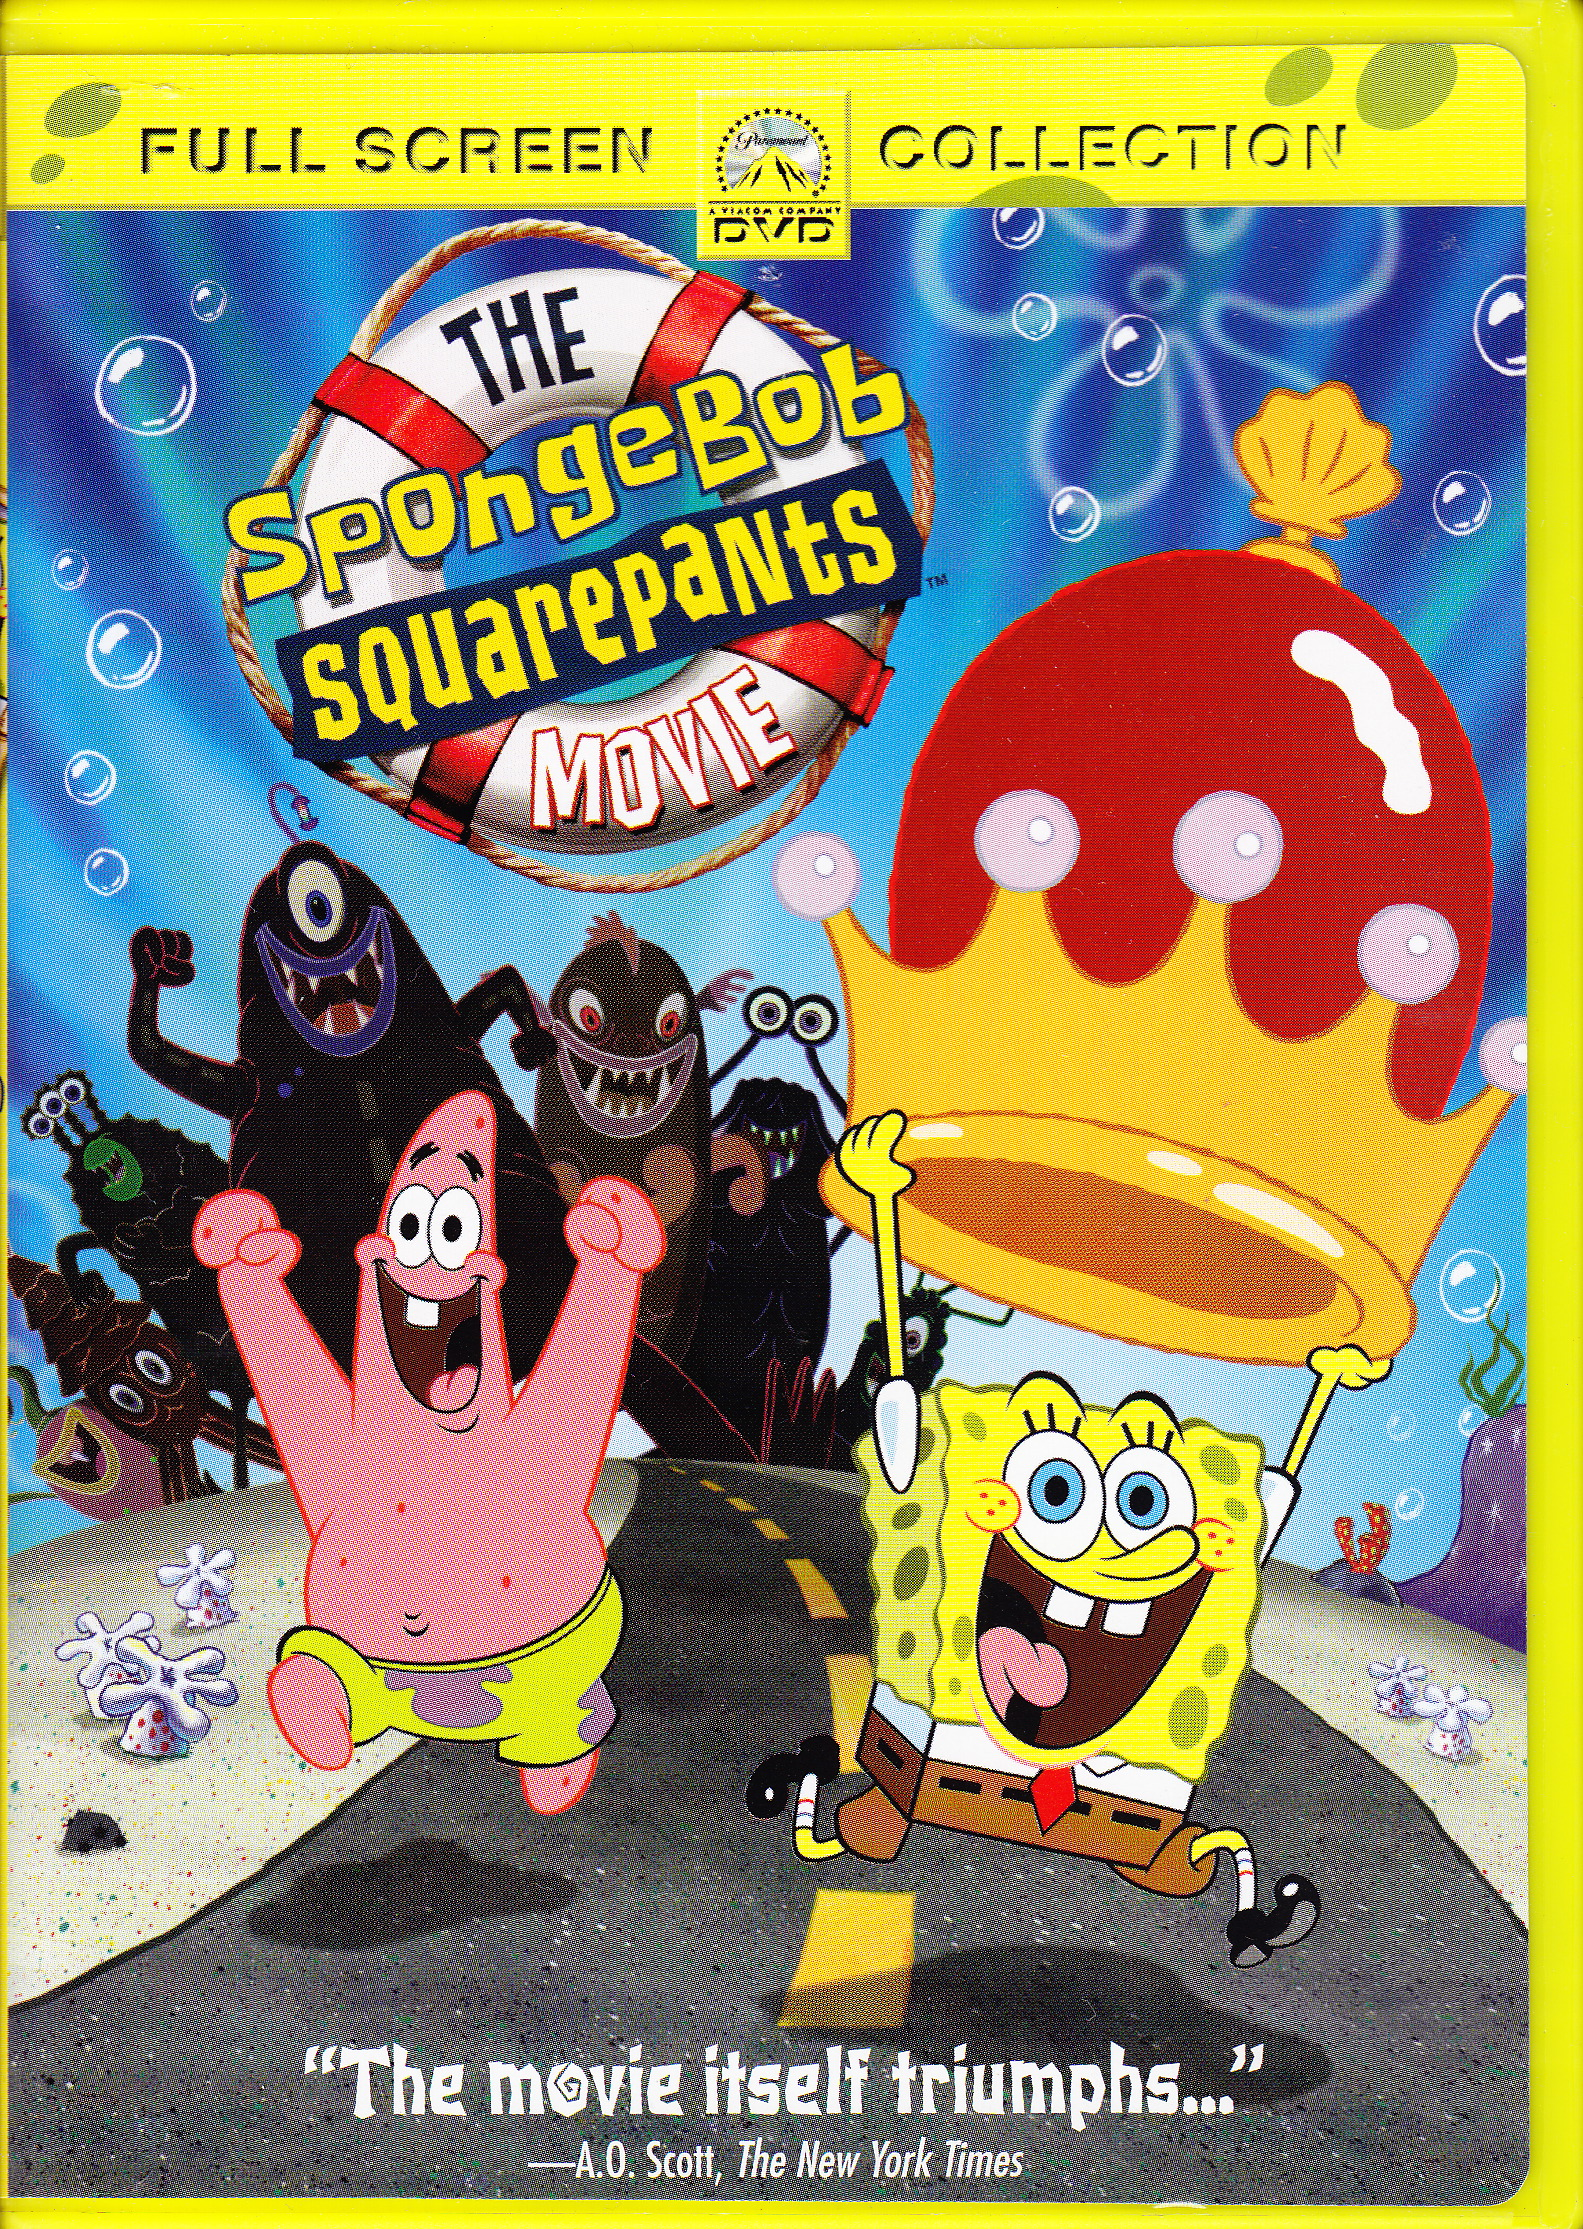 The SpongeBob SquarePants Movie Game. 9970 likes · 152 talking about this.  The SpongeBob SquarePants Movie is a video game based on the film of the.